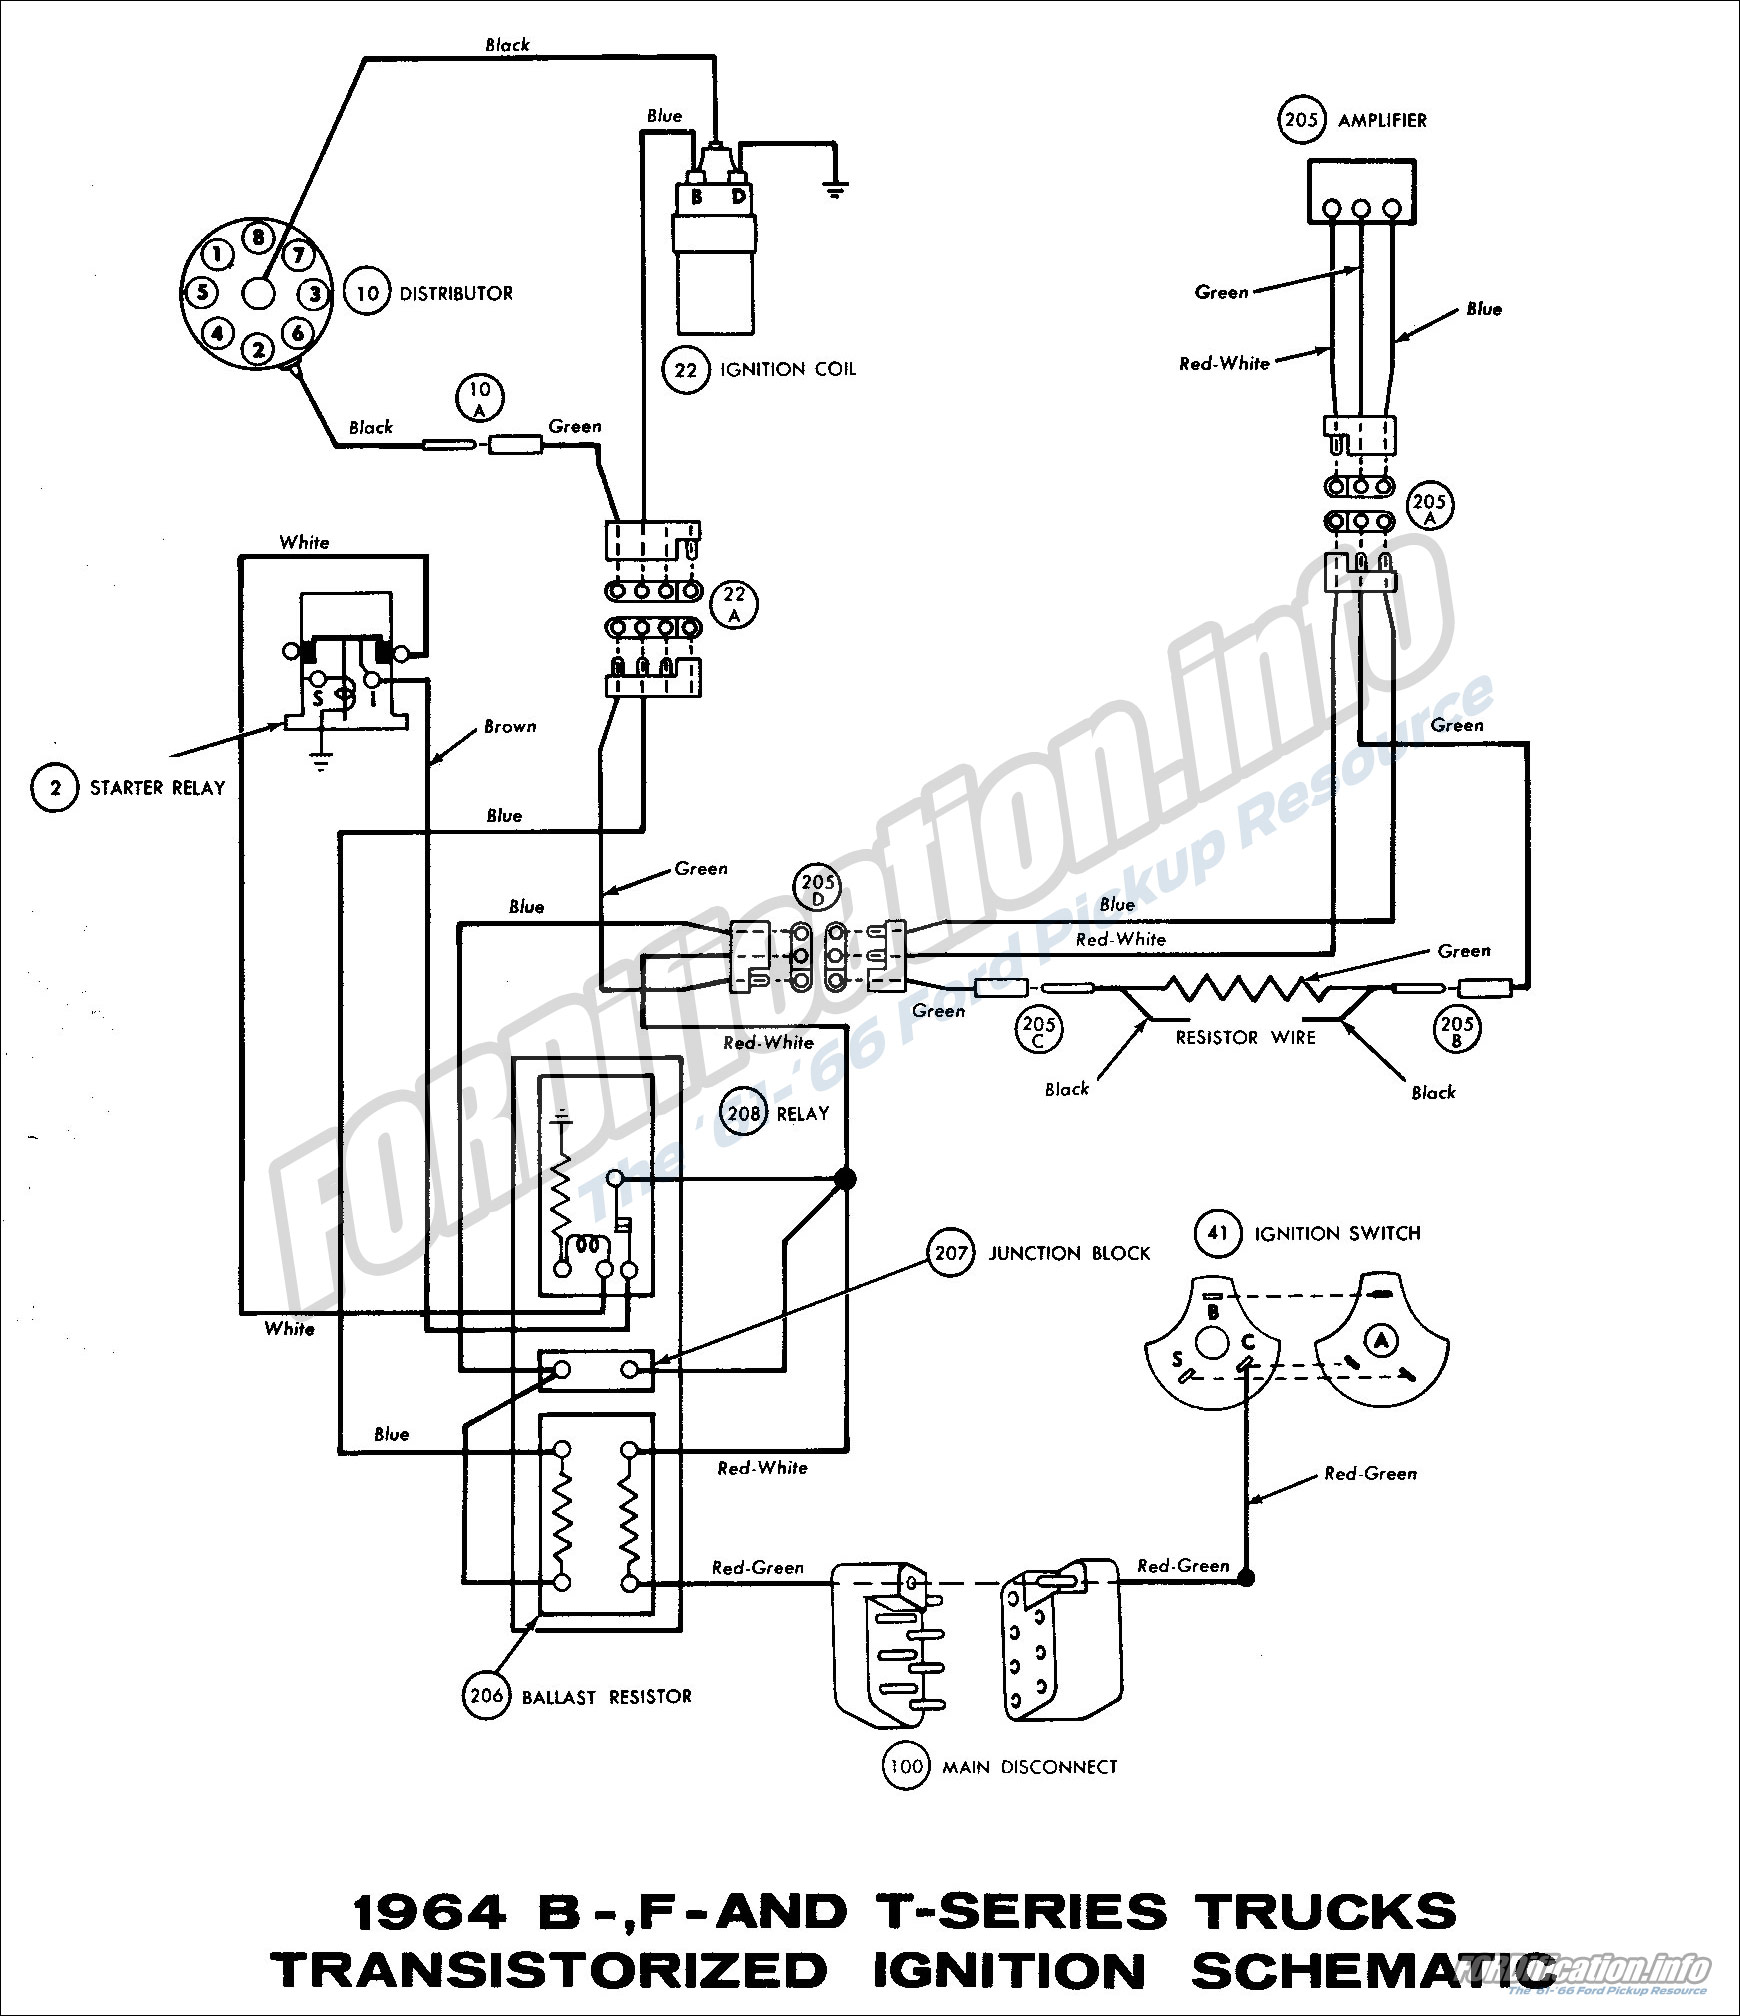 1964 Ford Ignition Switch Diagram - Wiring Diagrams Show